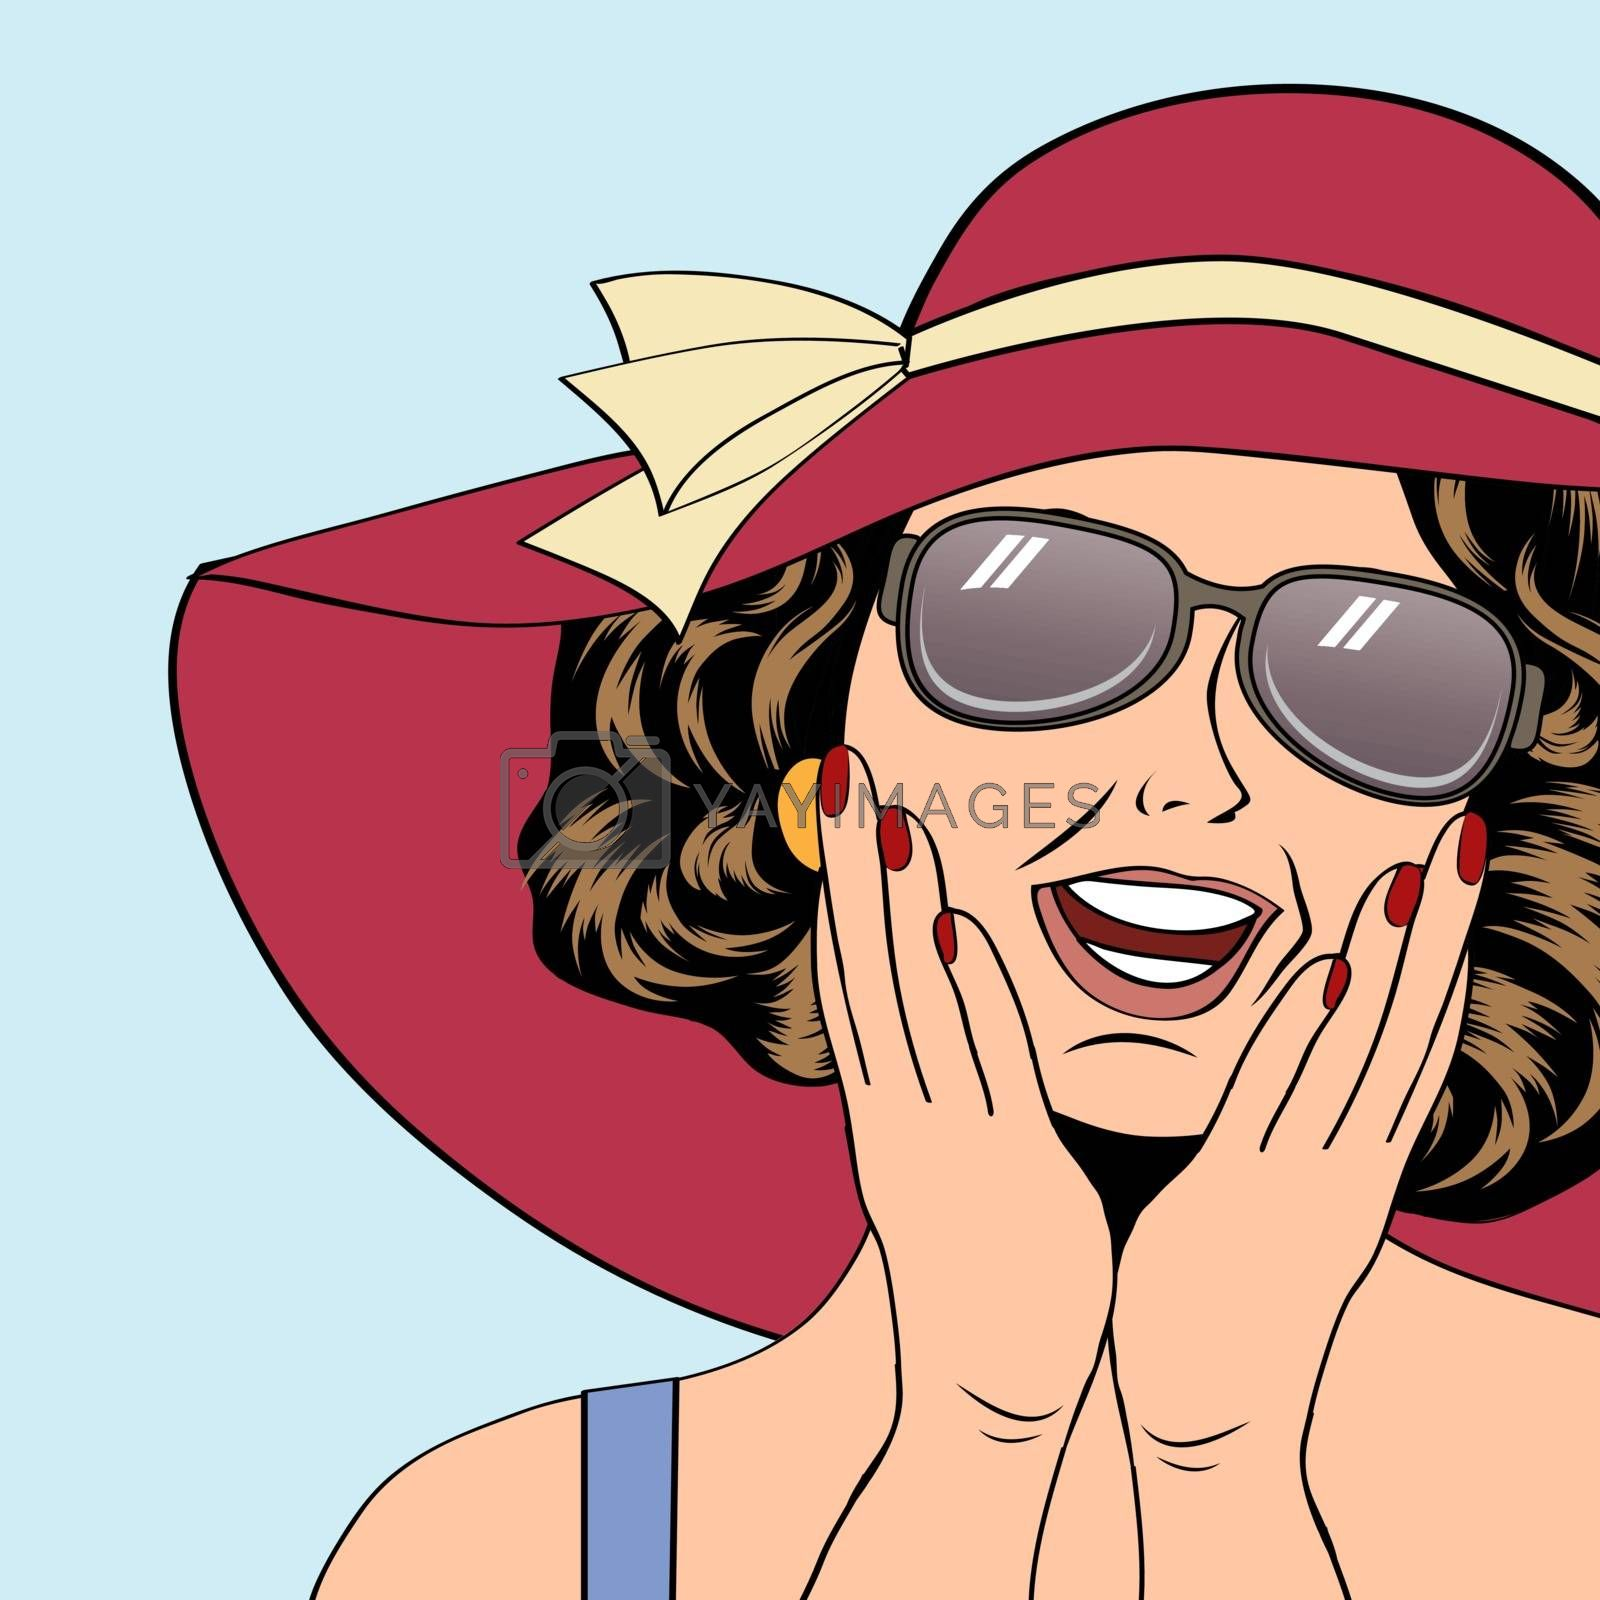 Royalty free image of popart retro woman with sun hat in comics style, summer illustra by balasoiu